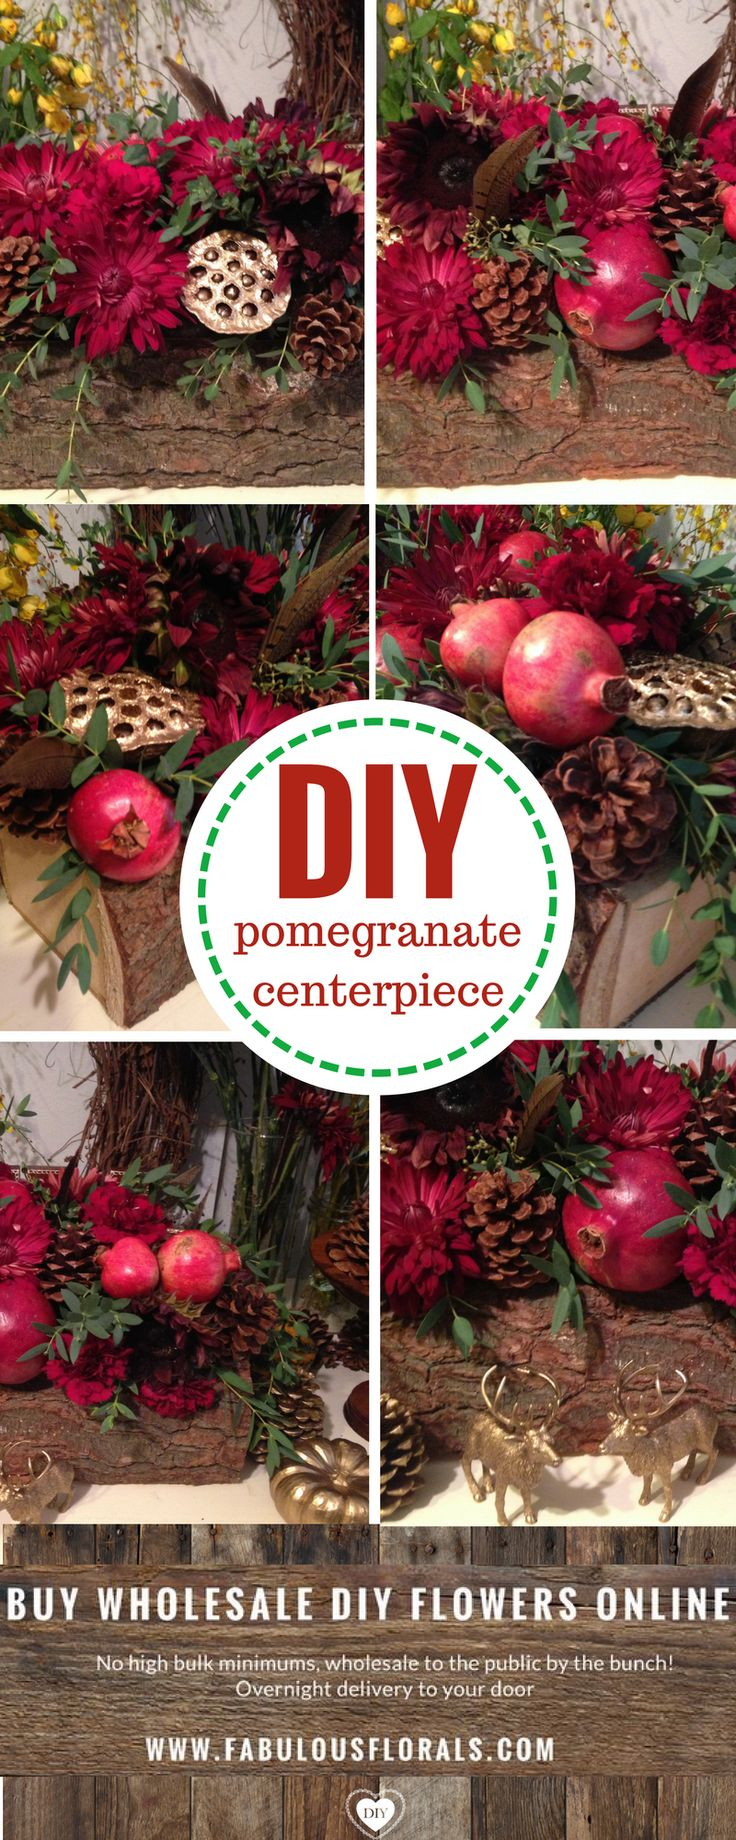 Diy holiday pomegranate centerpiece 2017 christmas flower trends www fabulousflorals com the